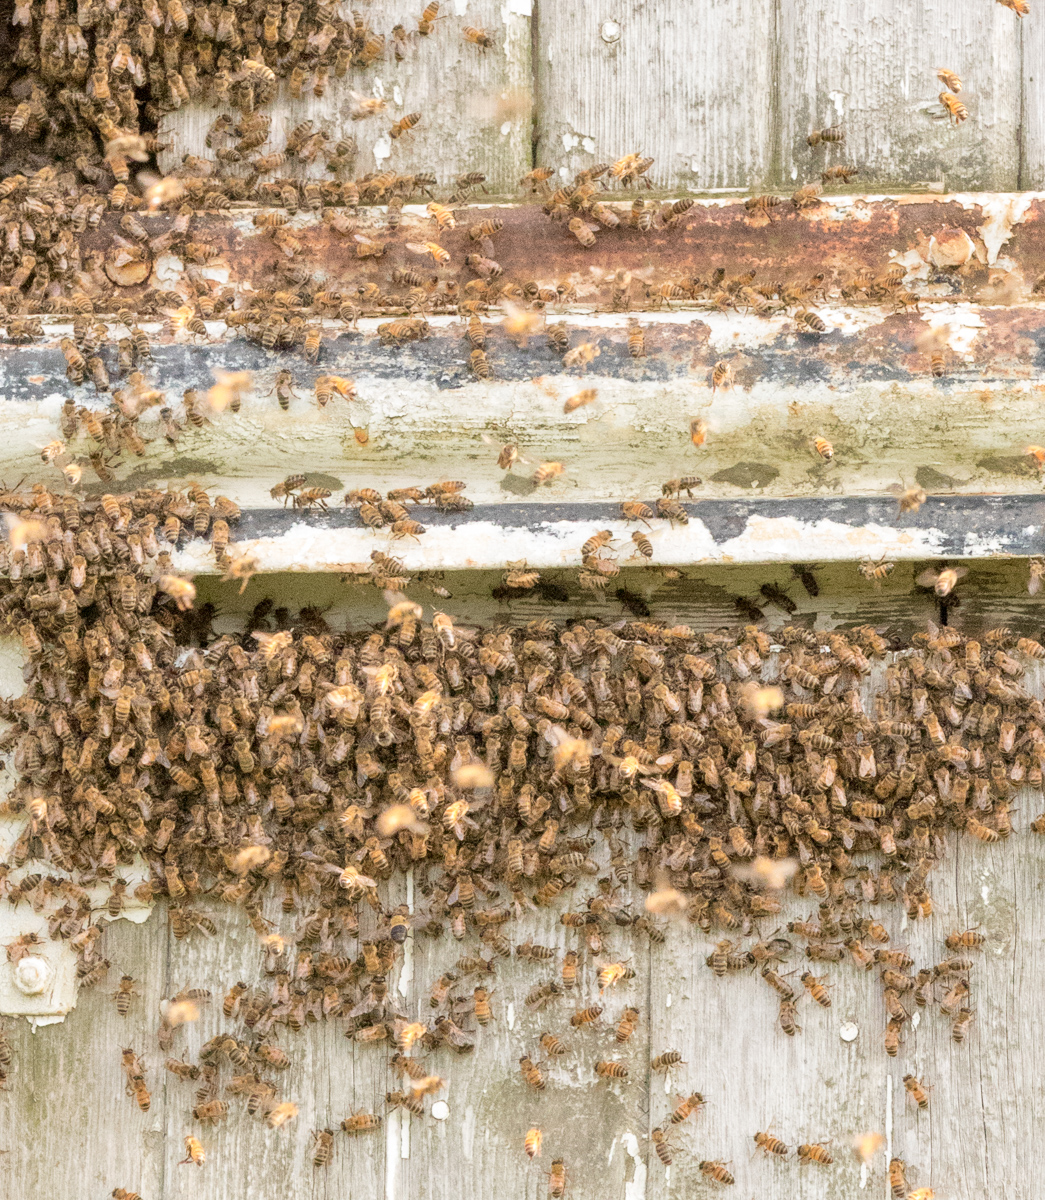 Honey bees finding a new home